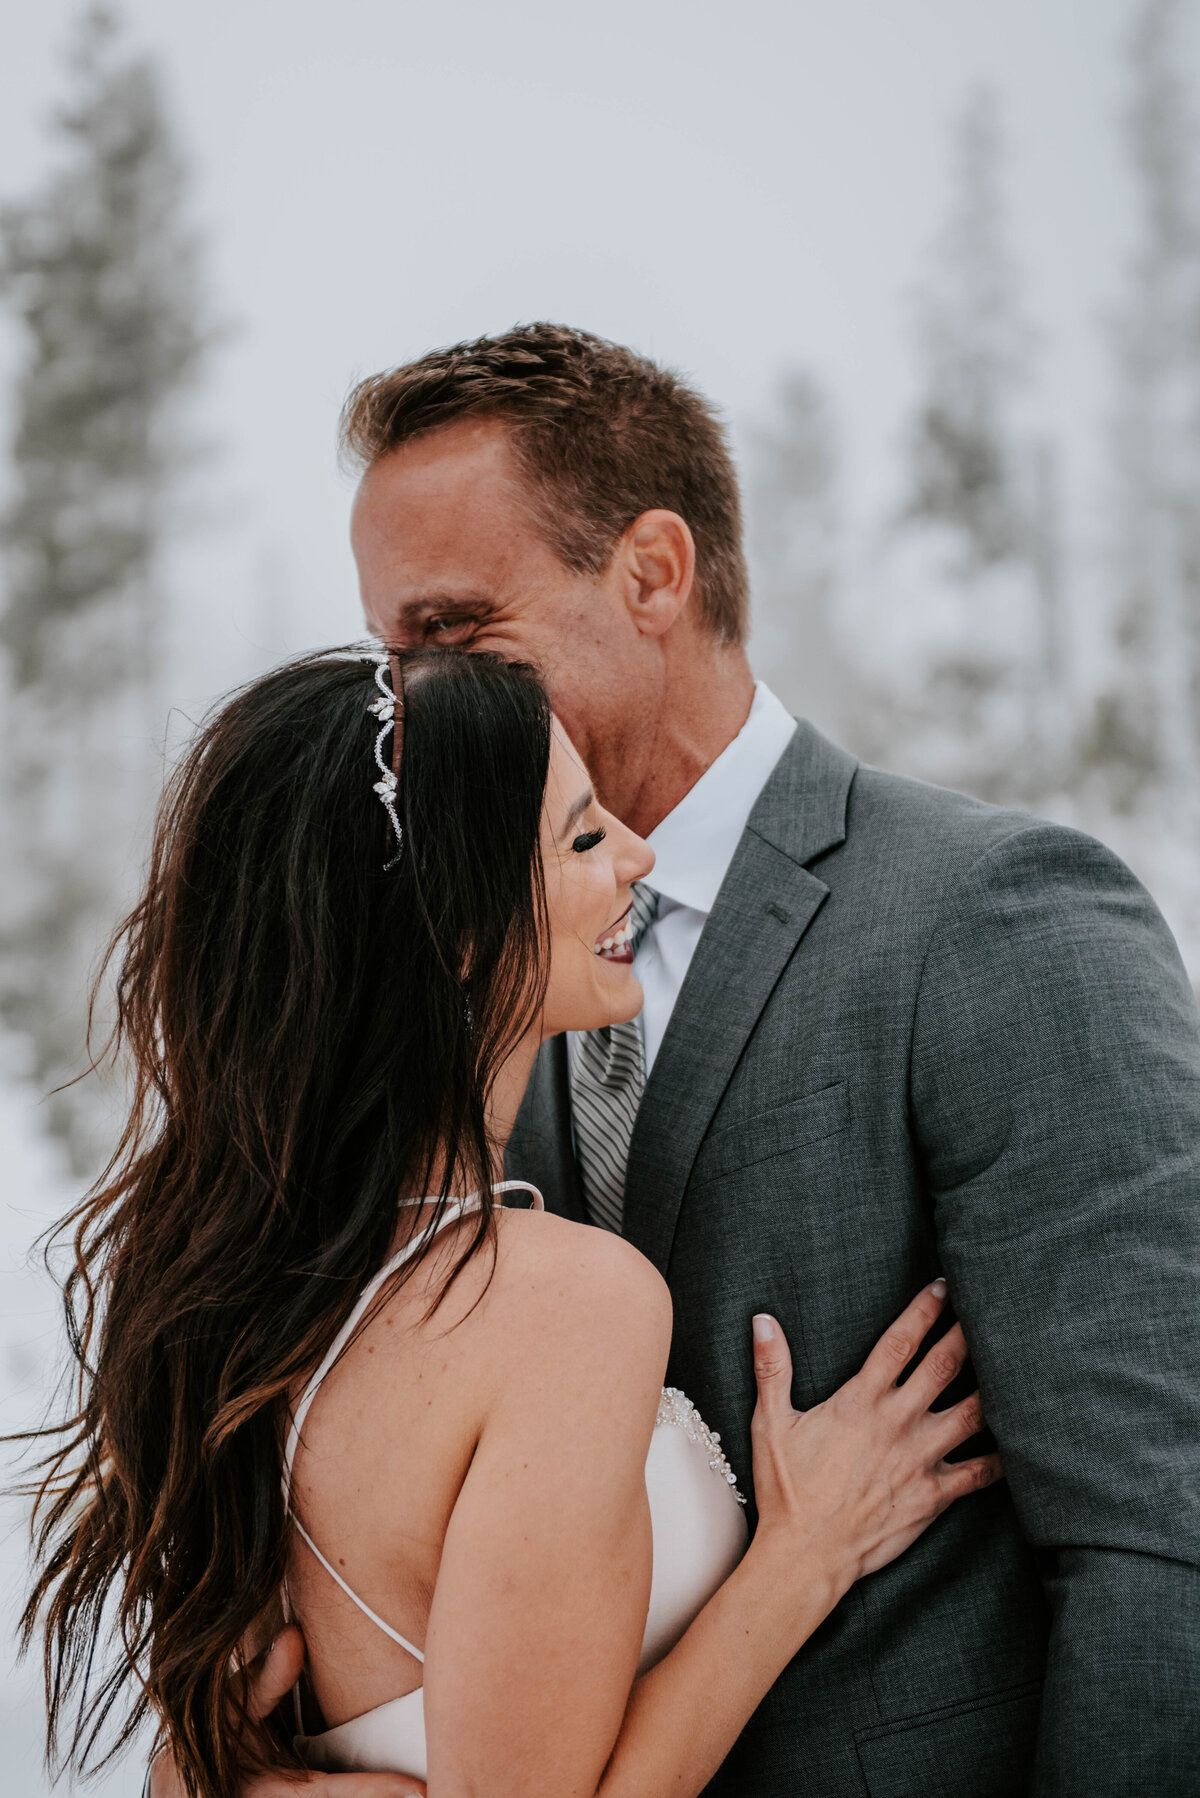 mt-bachelor-snow-winter-elopement-bend-oregon-wedding-photographer-2325